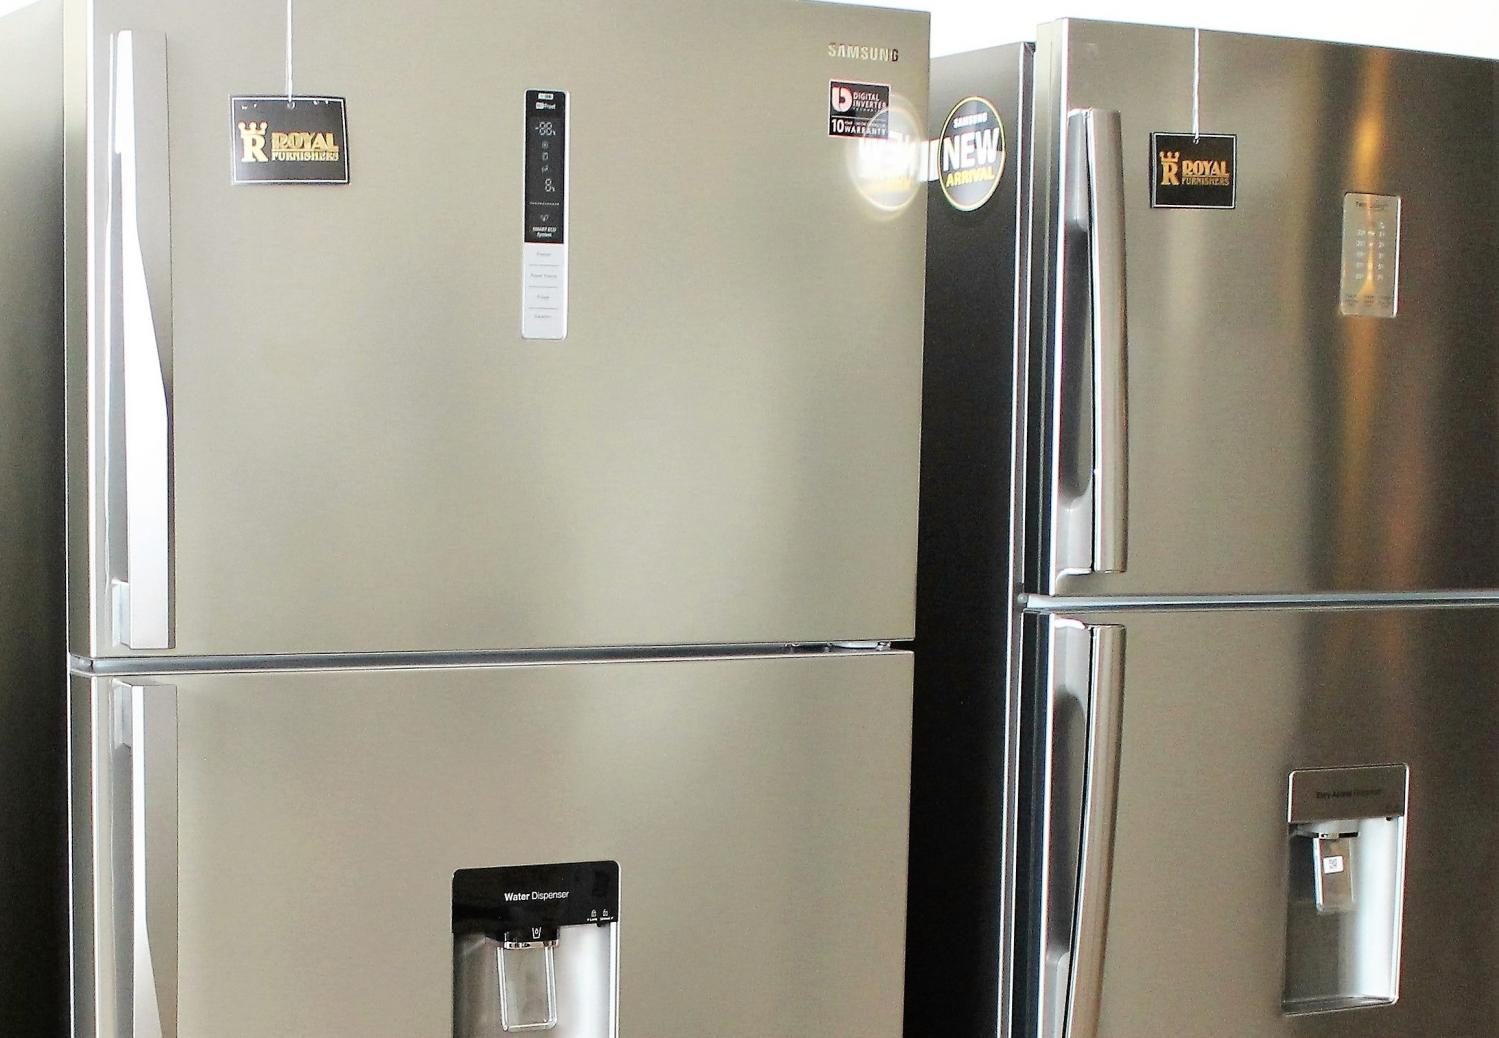 Appliances royal furnishers - Home appliances that we thought ...